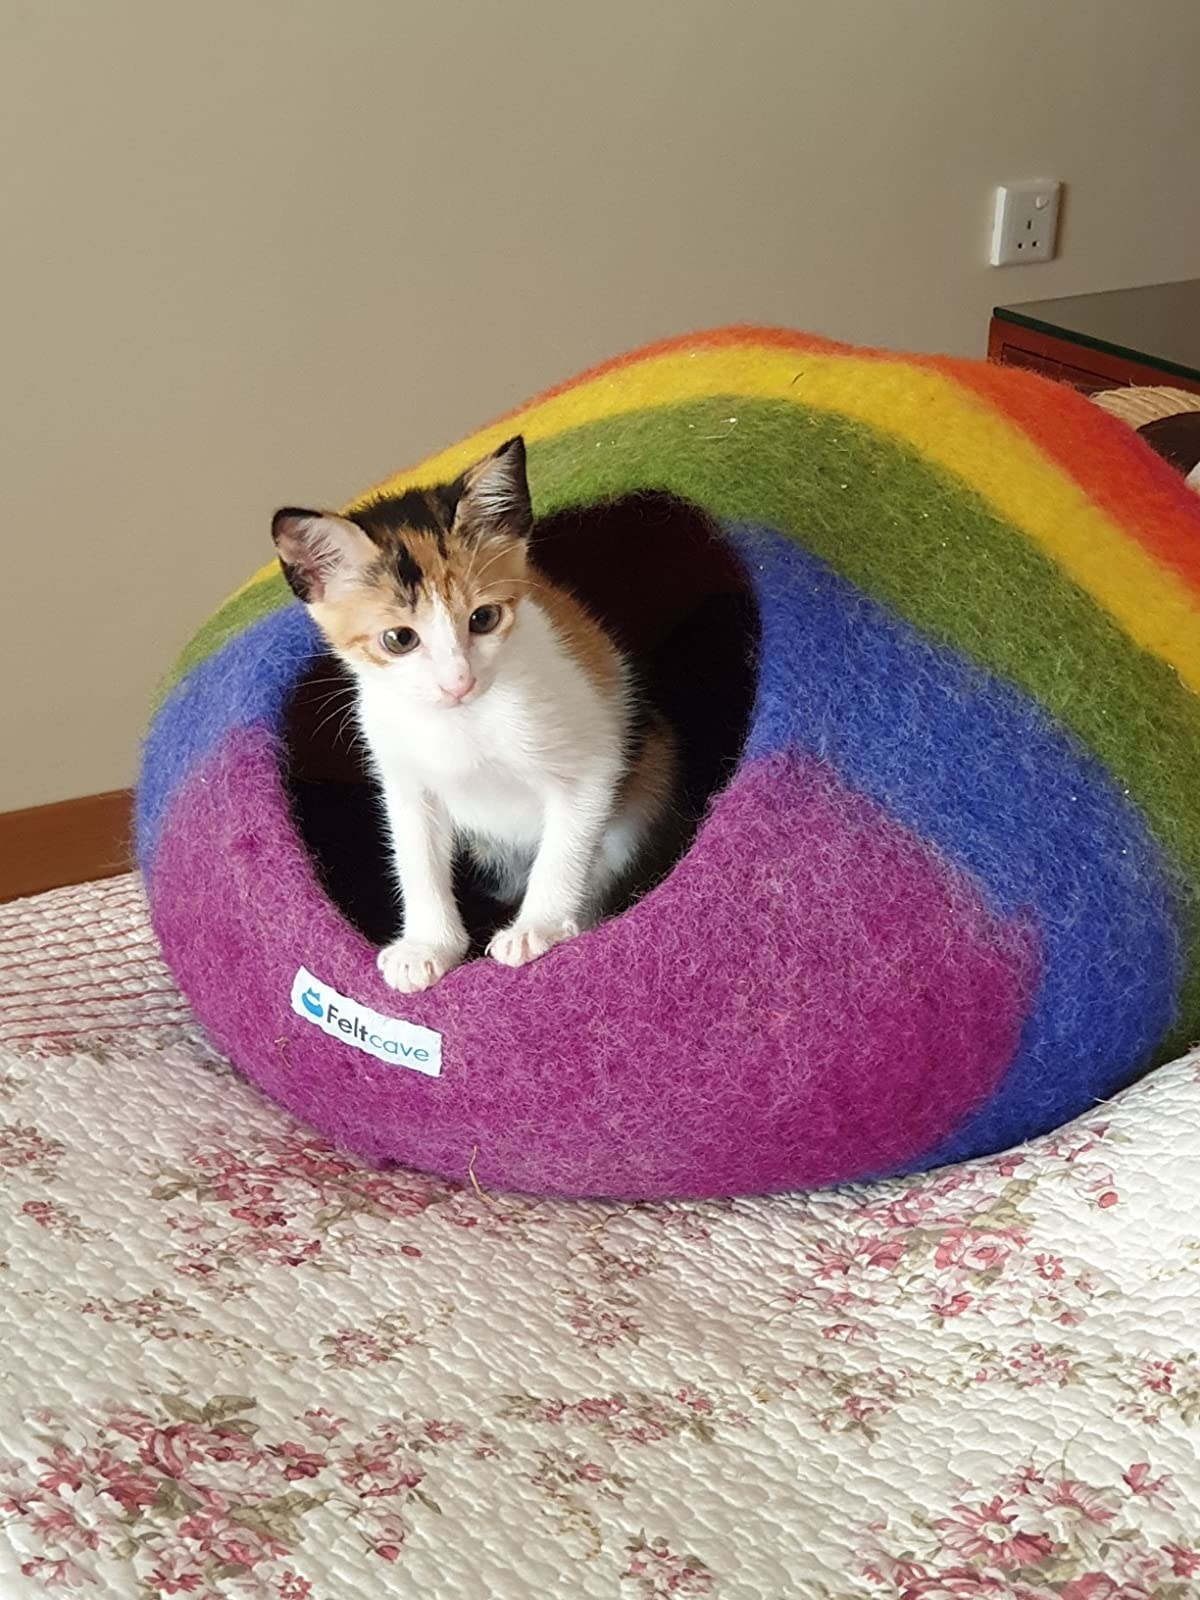 The cave bed, in rainbow